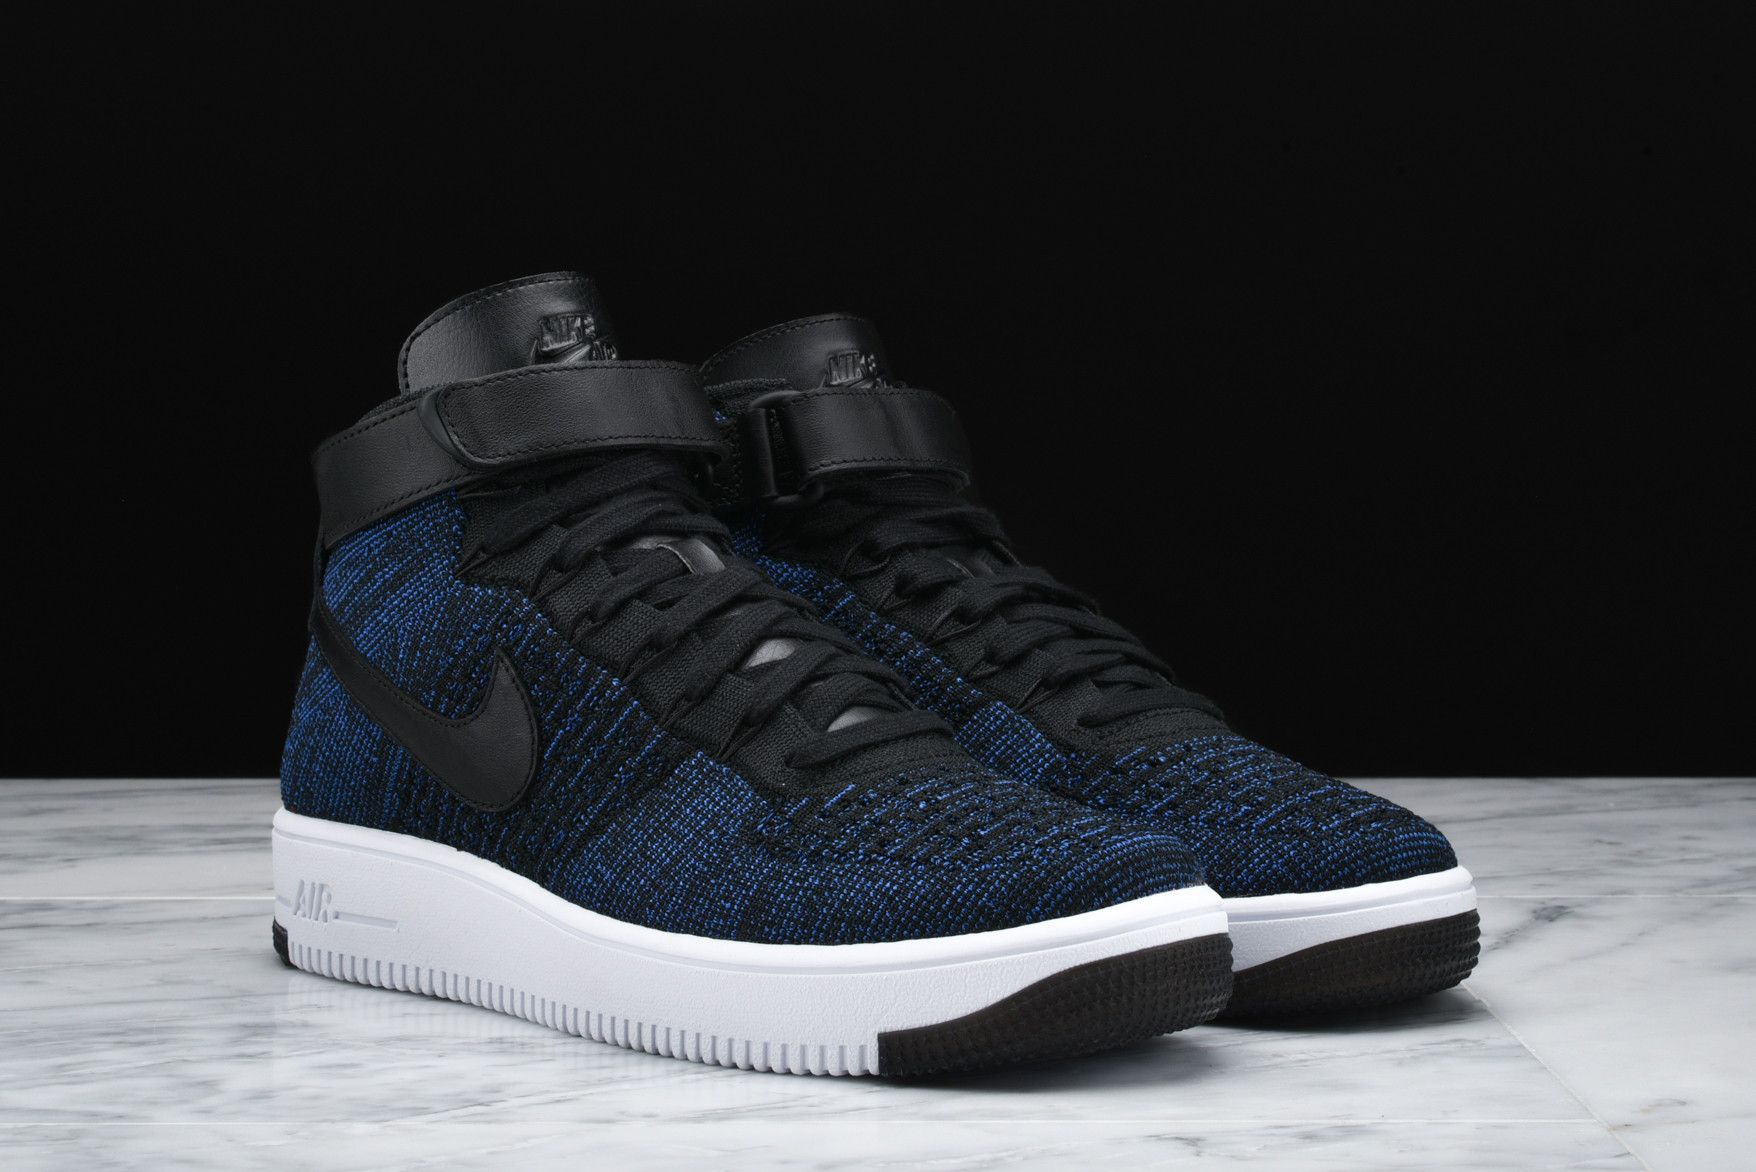 cheap nike air force 1 ultra flyknit blue